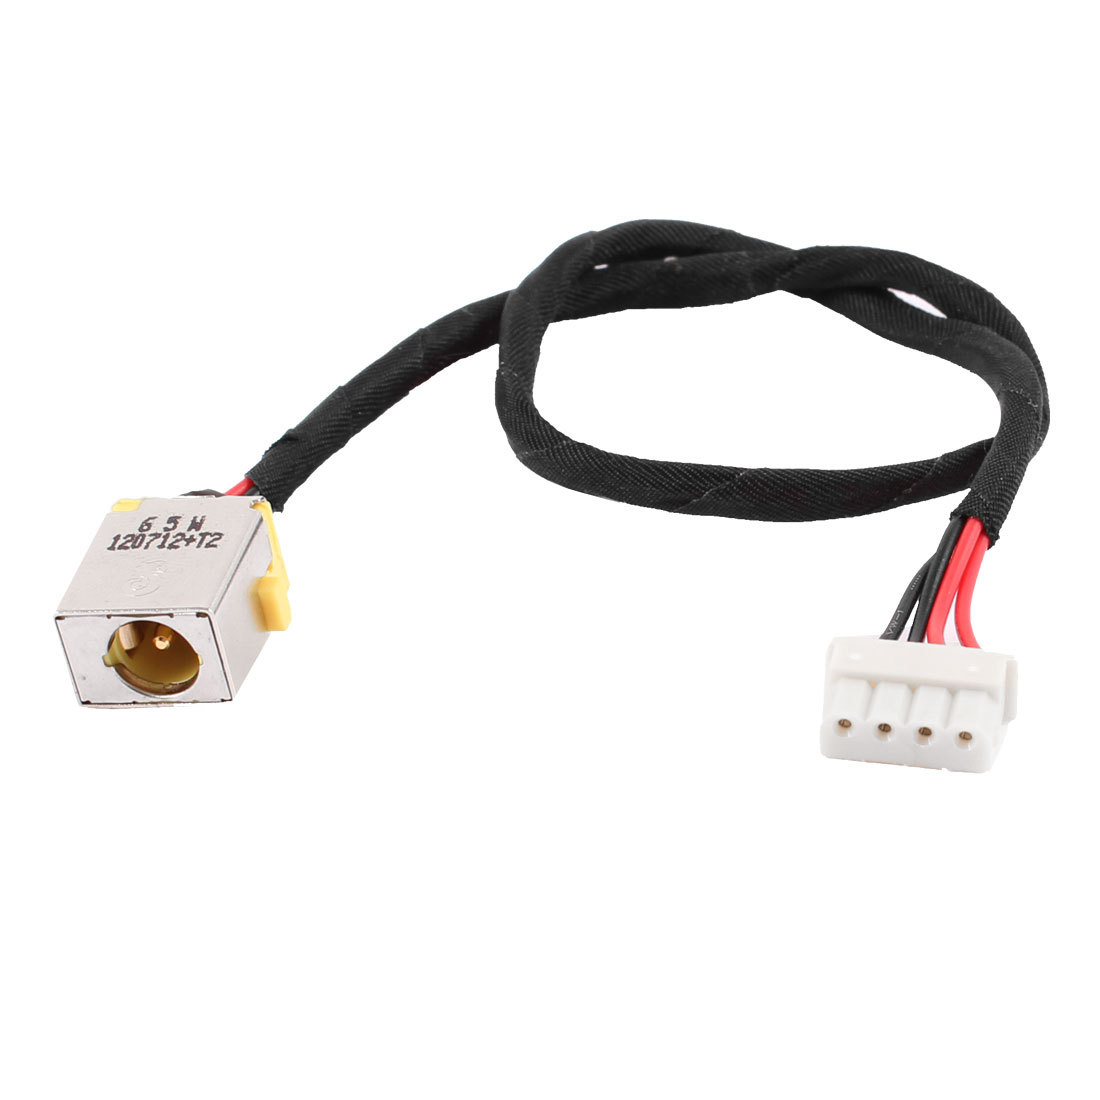 DC Power Jack Connector PJ217 w 4 Pins Cable for Acer Laptops